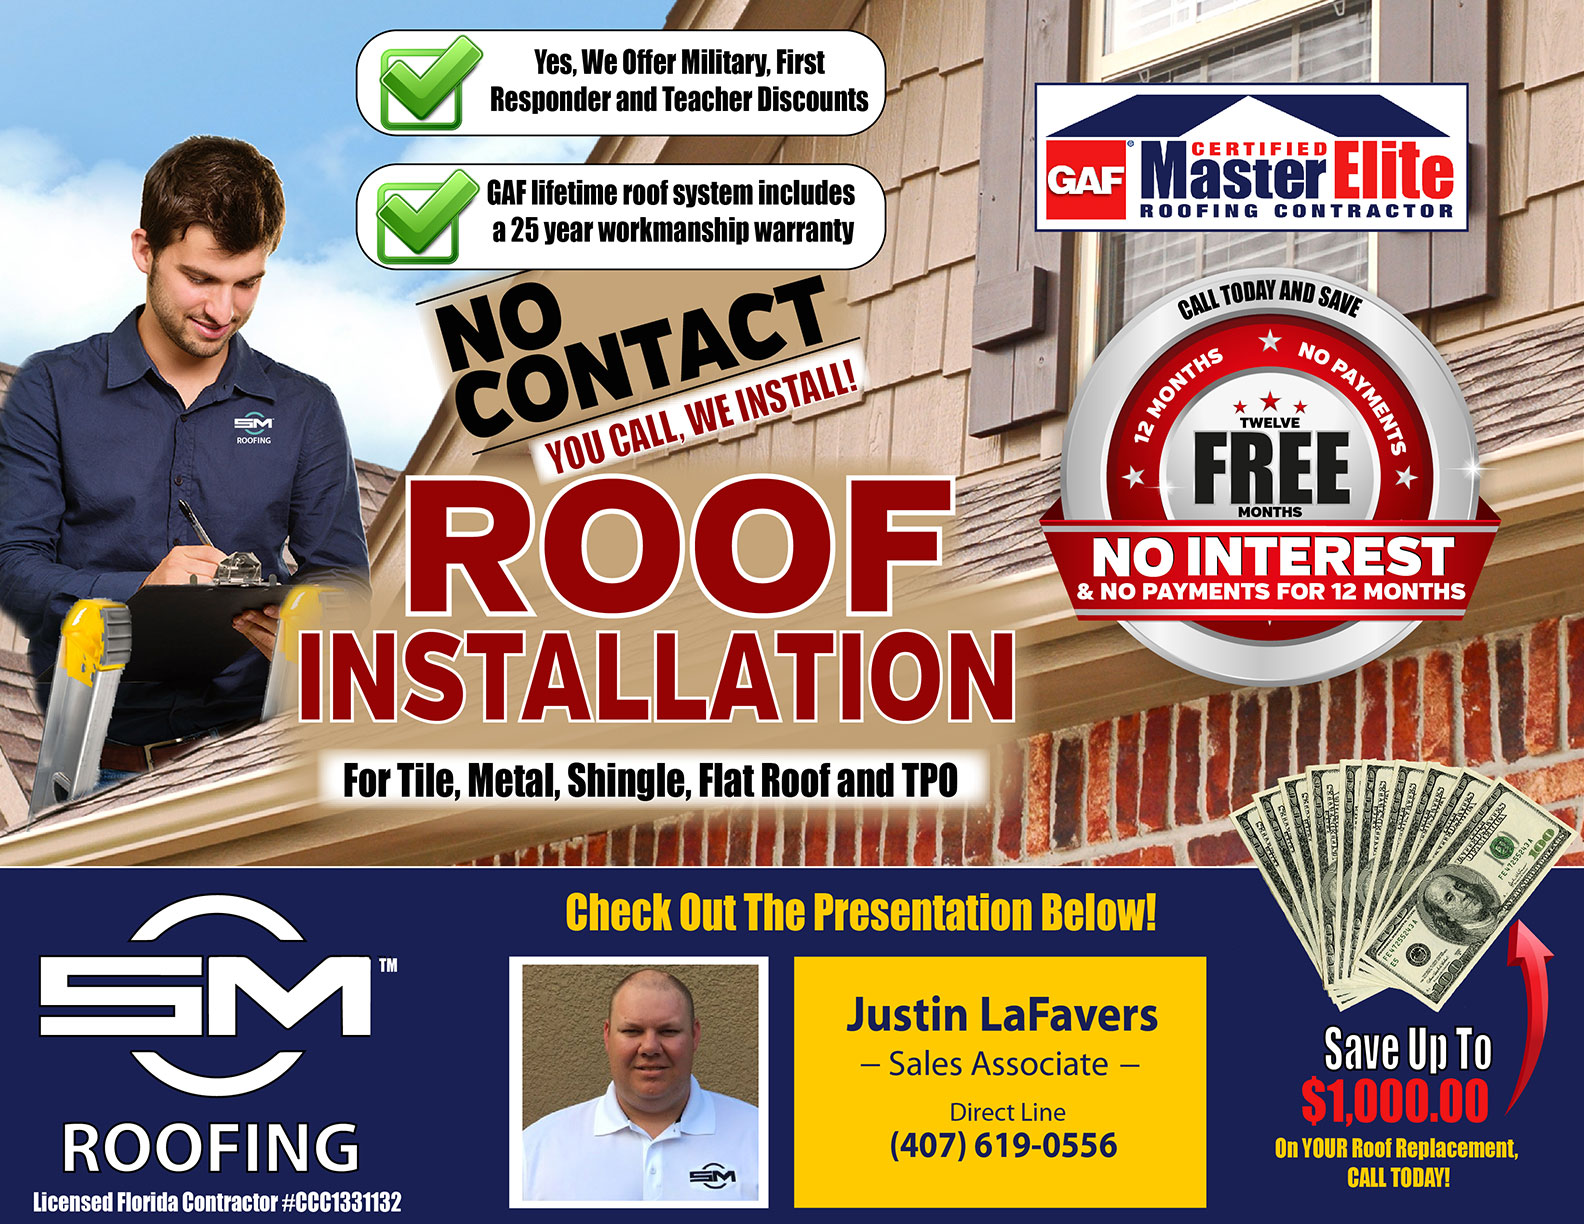 On behalf of SCM Roofing, Justin LaFavers welcomes you to our online presentation page. Below is a video which will walk you through each of the important aspects of our roofing process. Thank you for visiting, let's scroll down the page and begin.